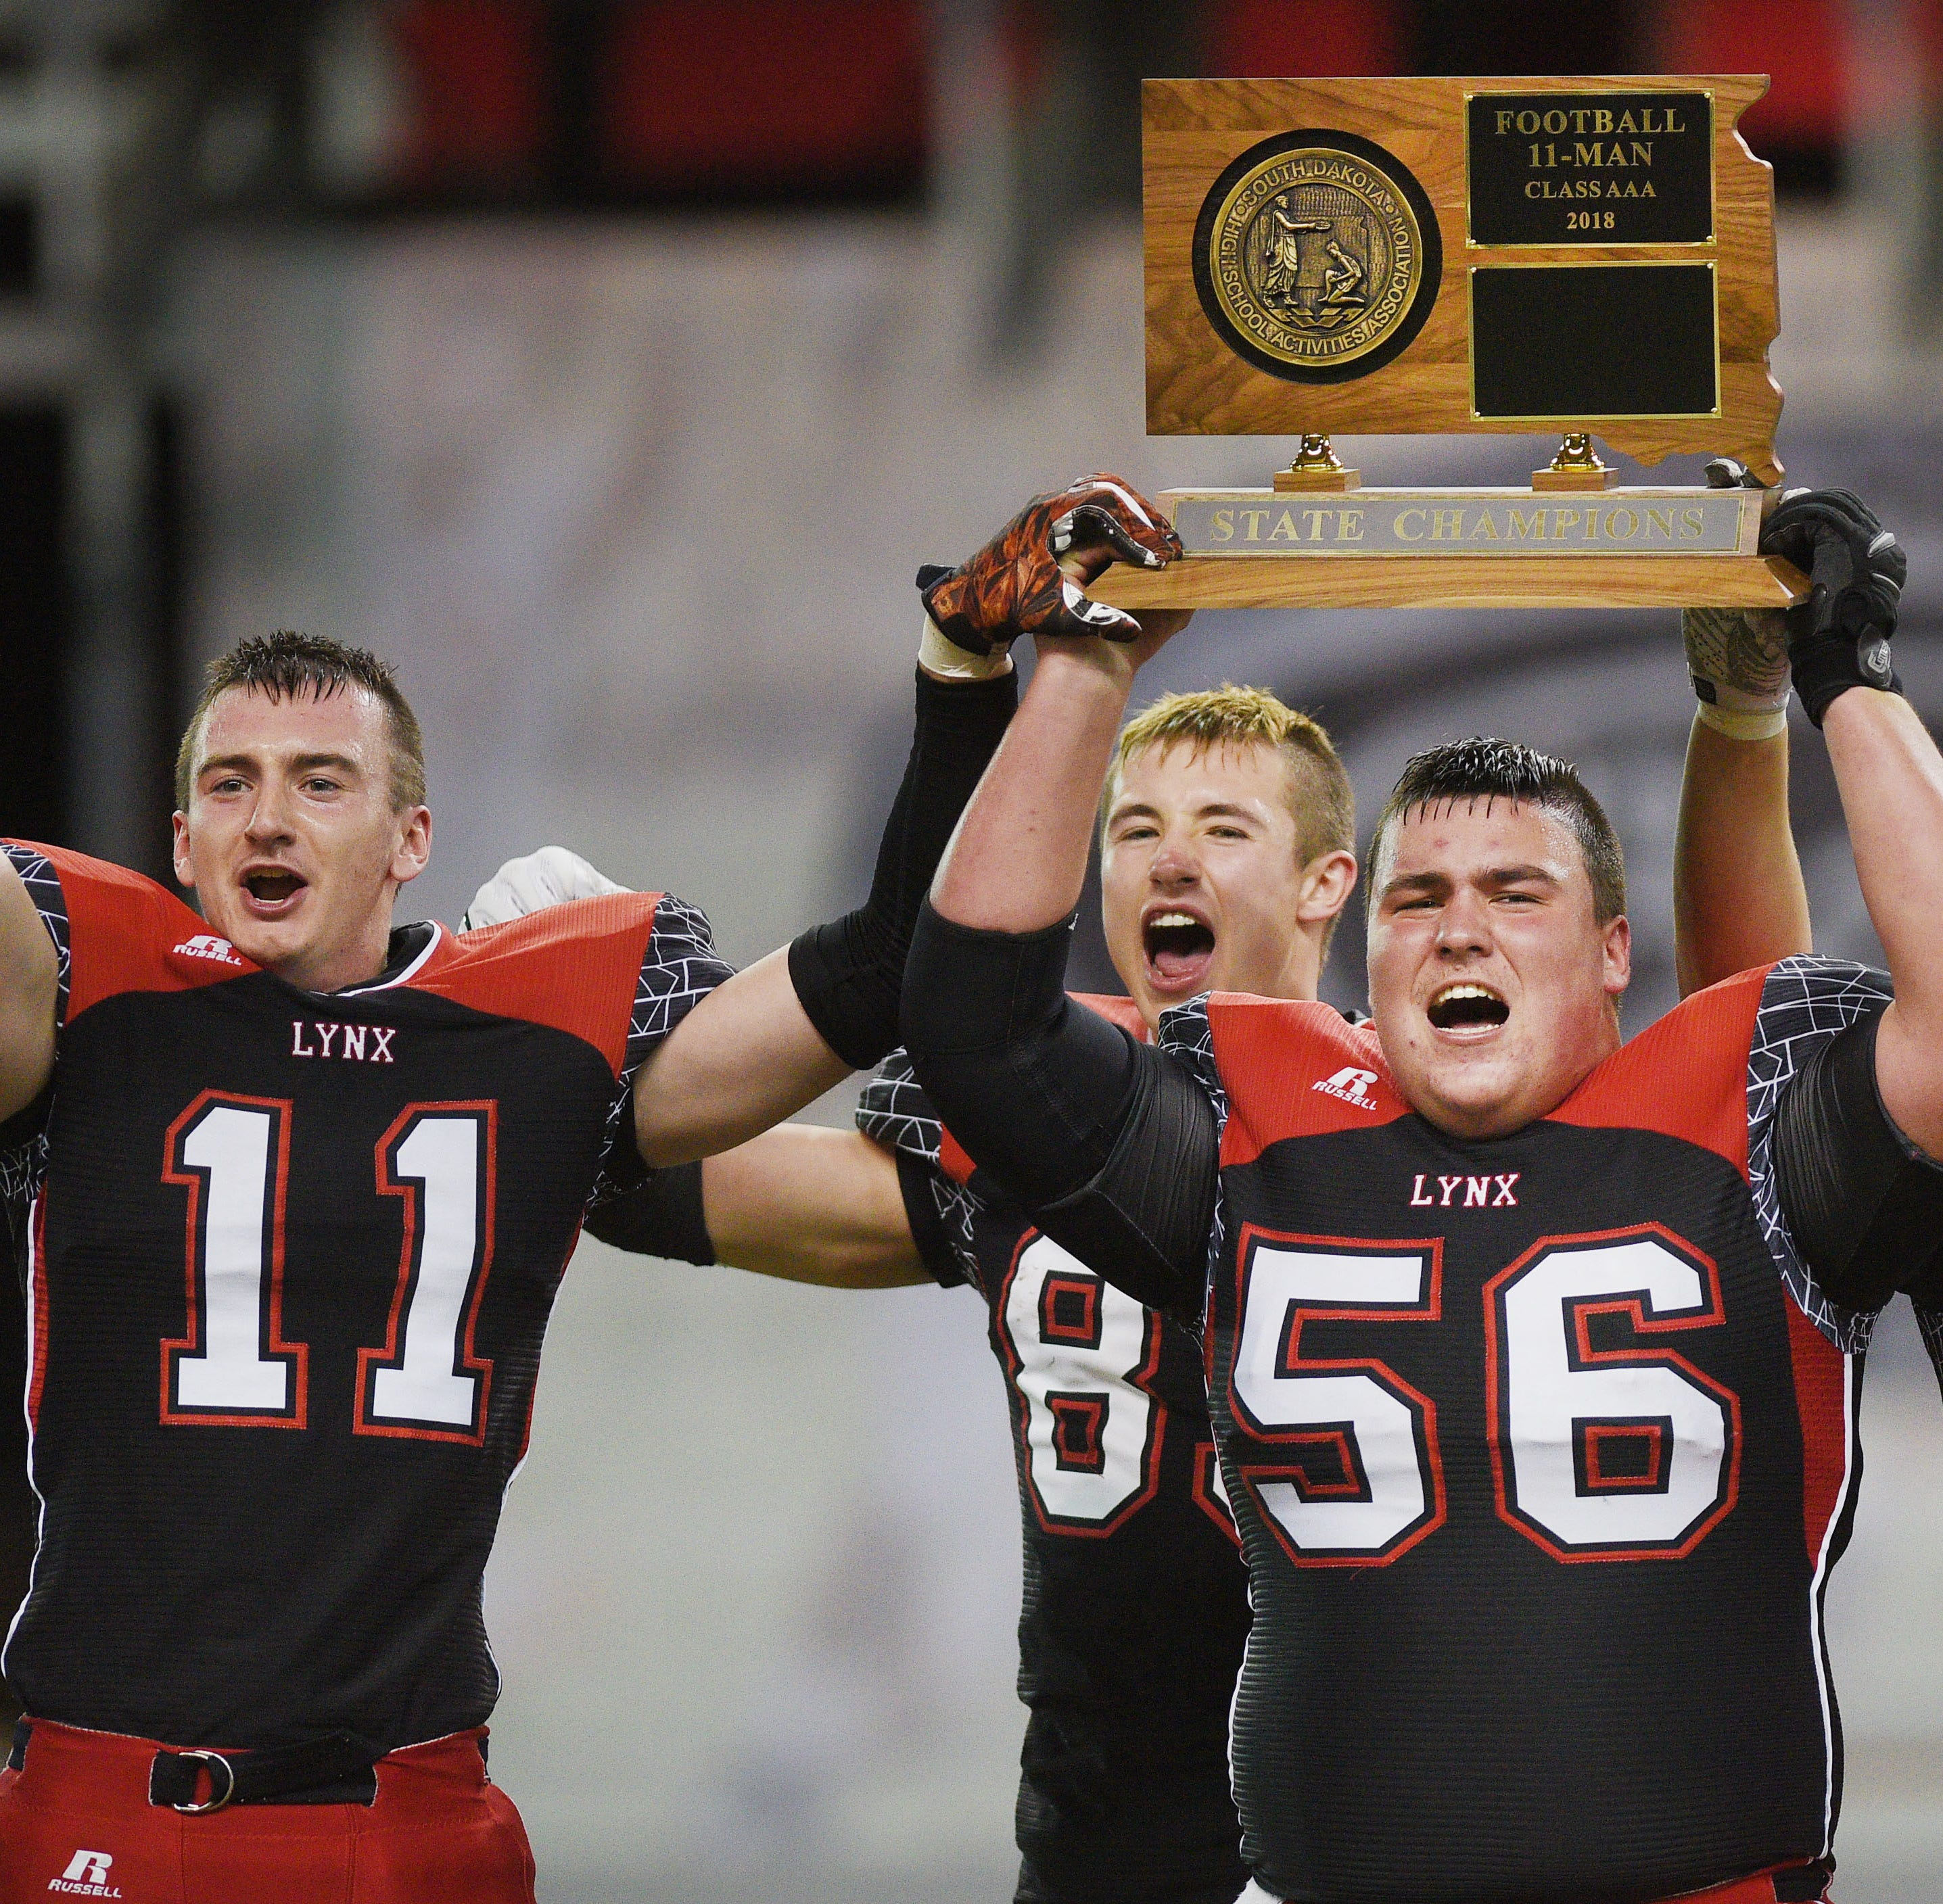 Season of the Lynx: Brandon Valley unseats Washington from atop 11AAA